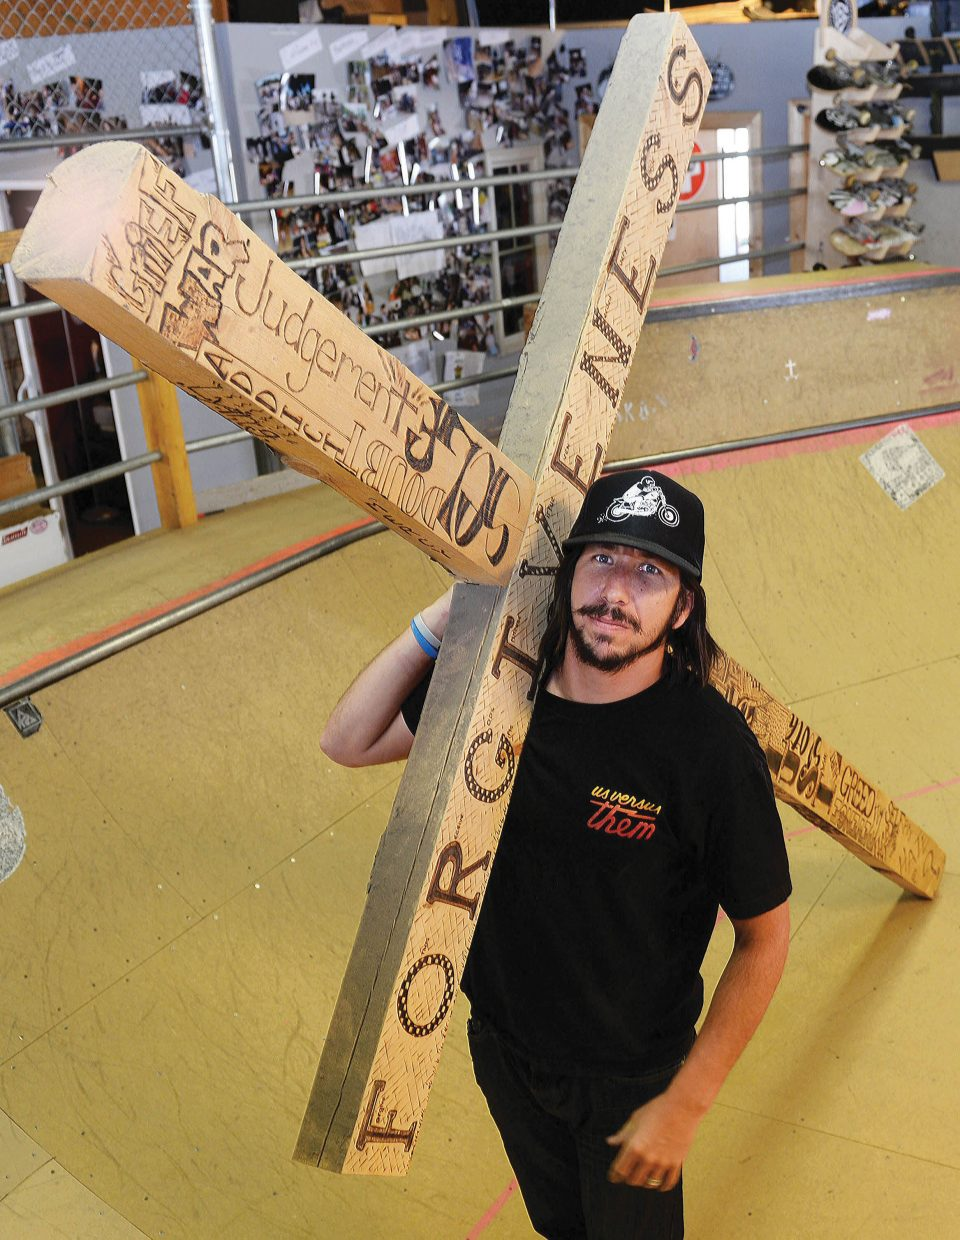 Pastor Buck Chavarria understands the problems that come along with substance abuse. He hopes that the Christ for Life Sk8 Church in Steamboat Springs can offer those touched by opiate addiction a place to find help, support and understanding.